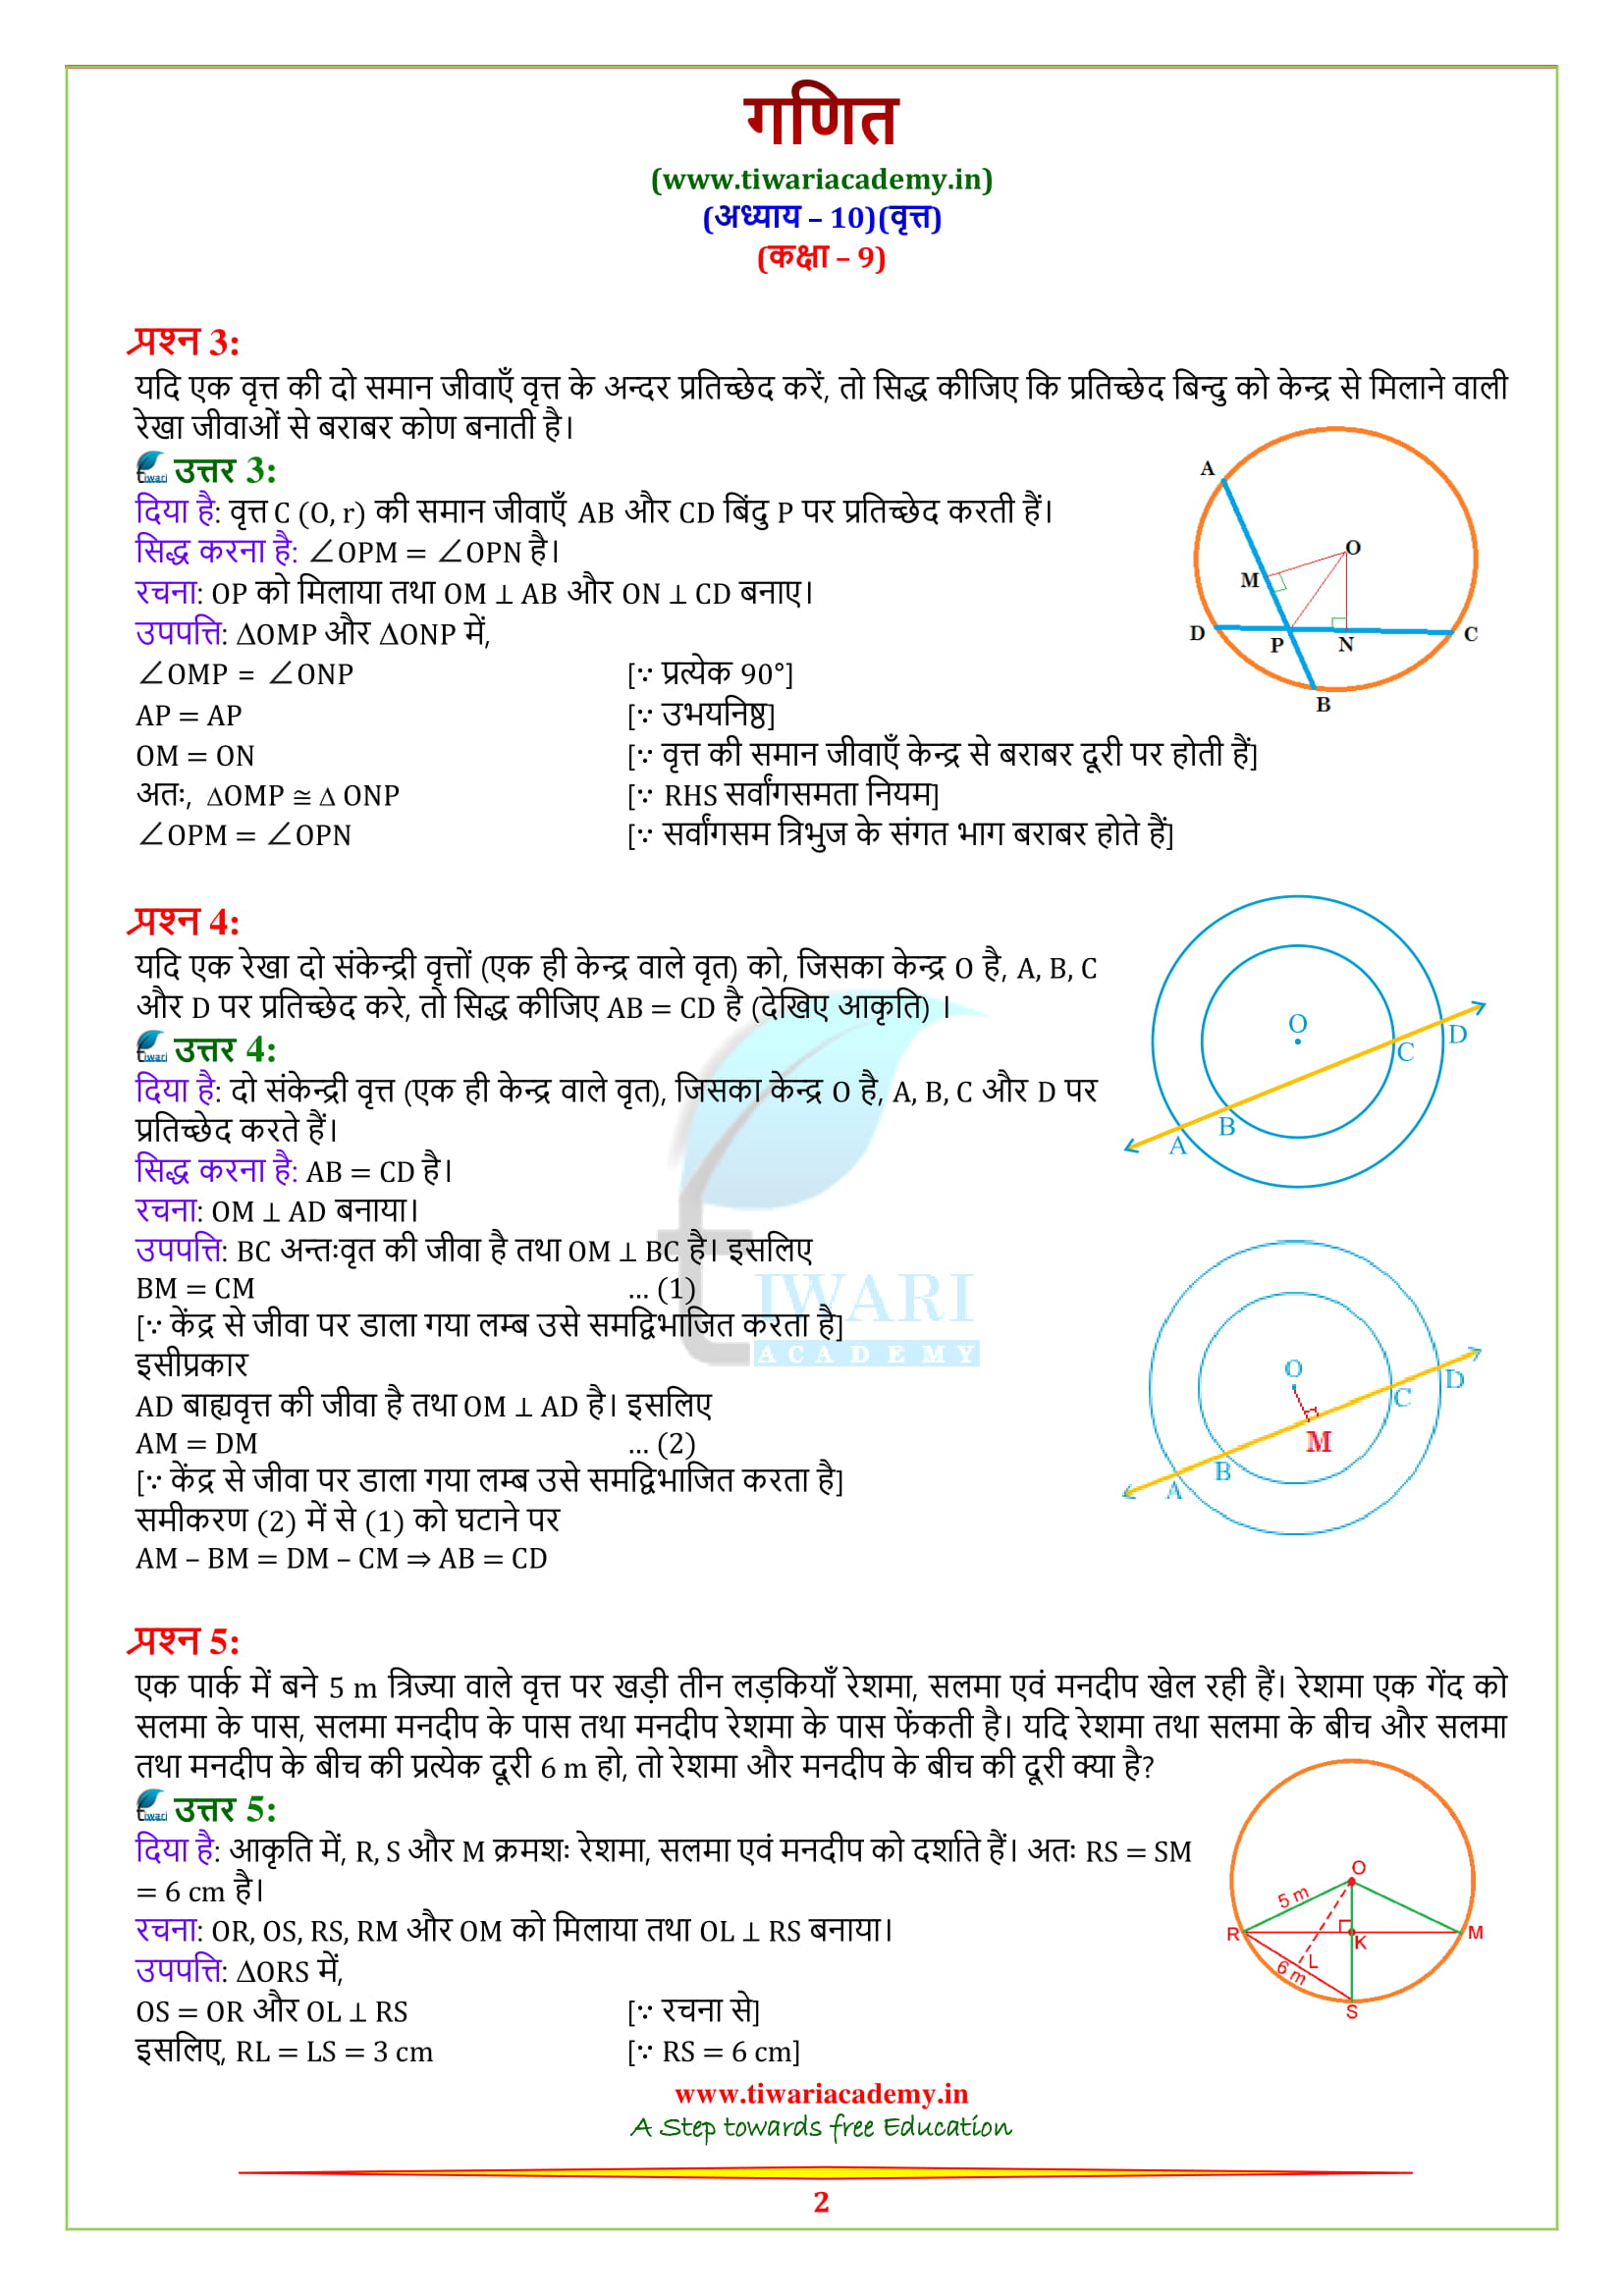 9 Maths Exercise 10.4 solutions in hindi updated for 2018-19 new syllabus